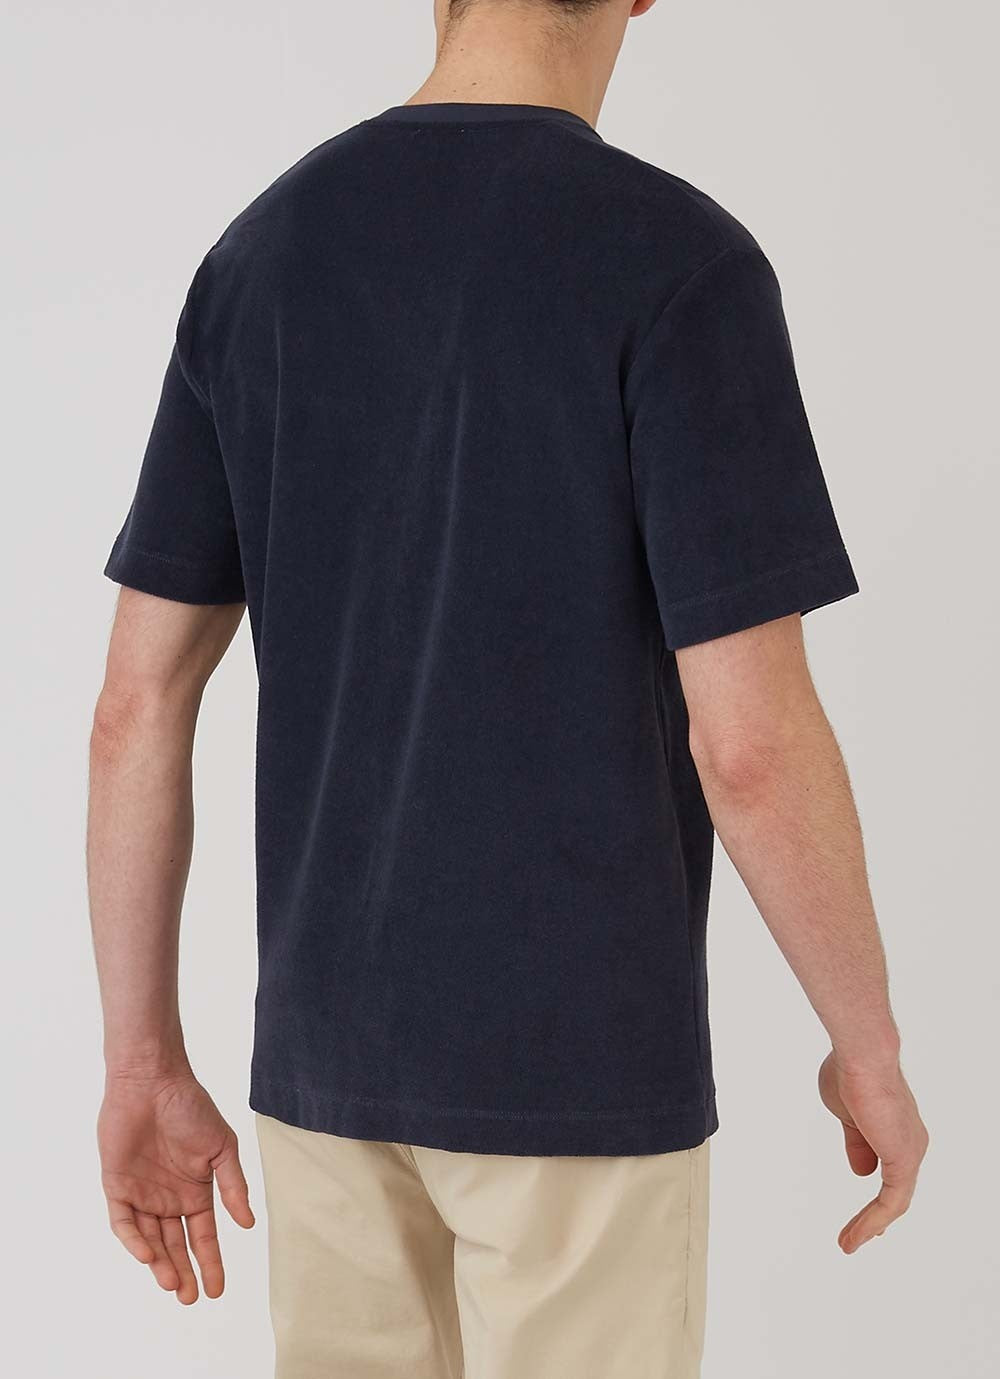 Organic Cotton Towelling T-Shirt